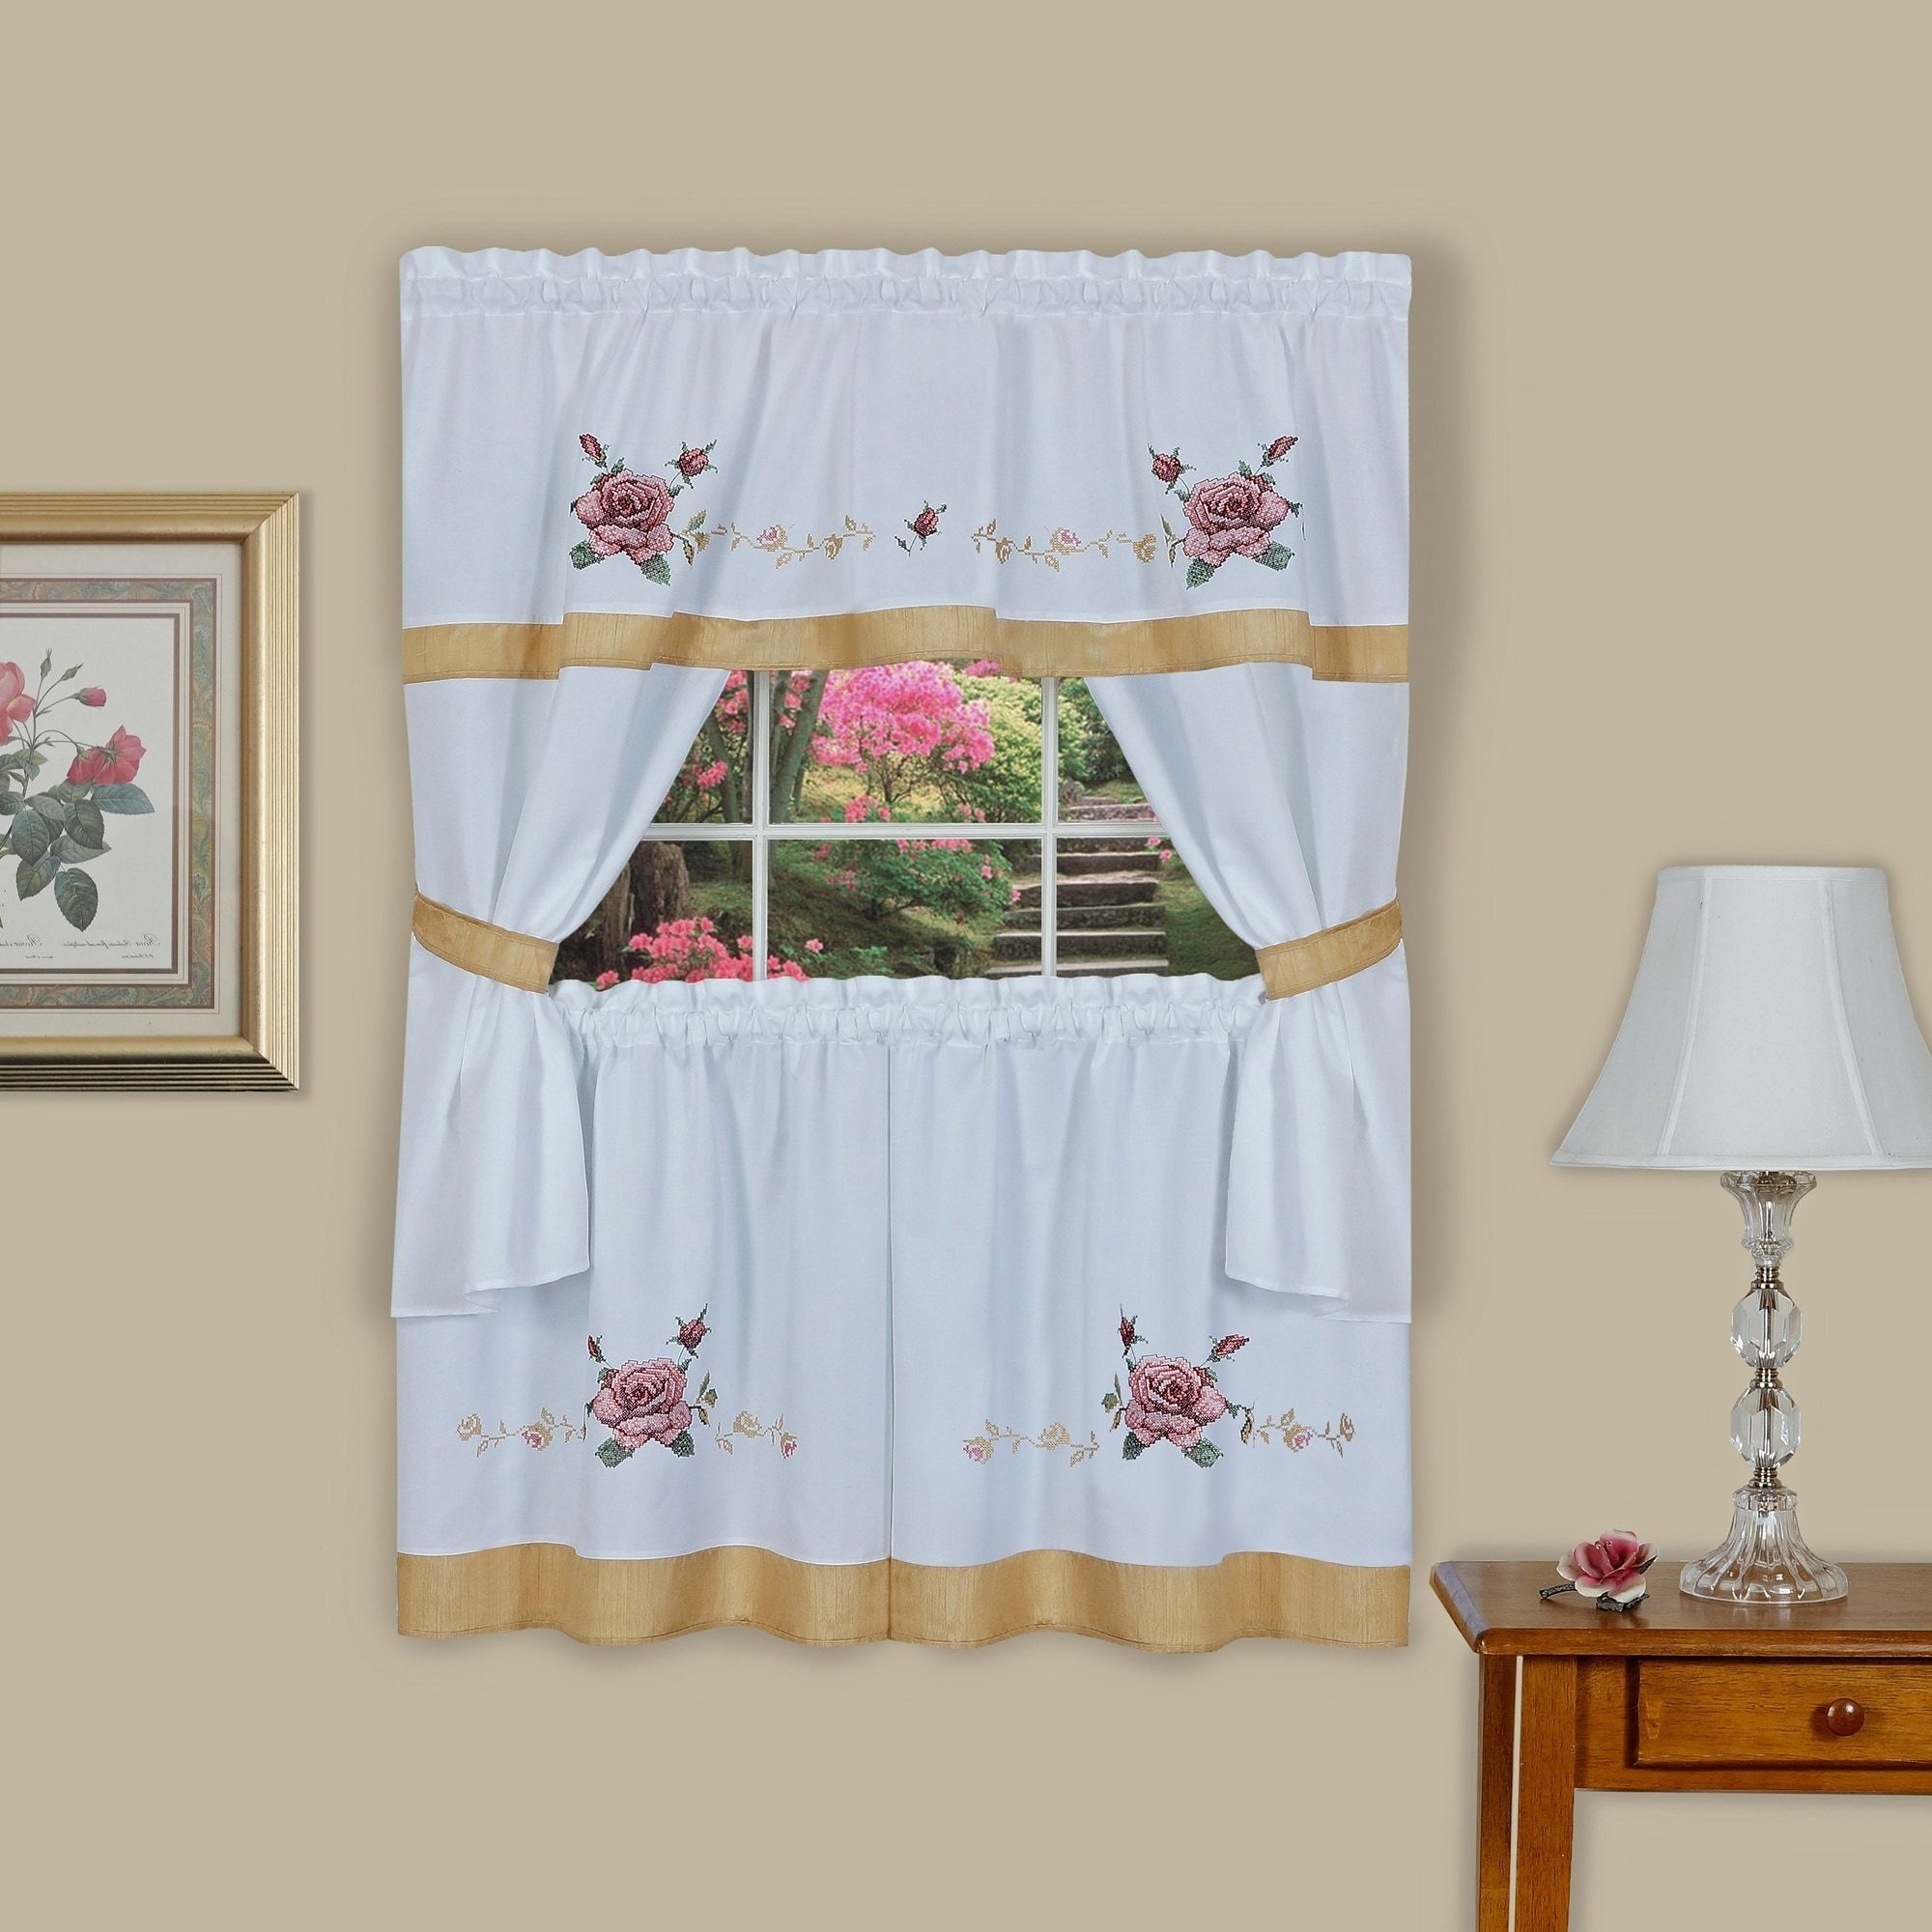 Popular French Vanilla Country Style Curtain Parts With White Daisy Lace Accent Intended For Achim Rose Embellished Cottage Window Curtain Set (57x (View 13 of 20)